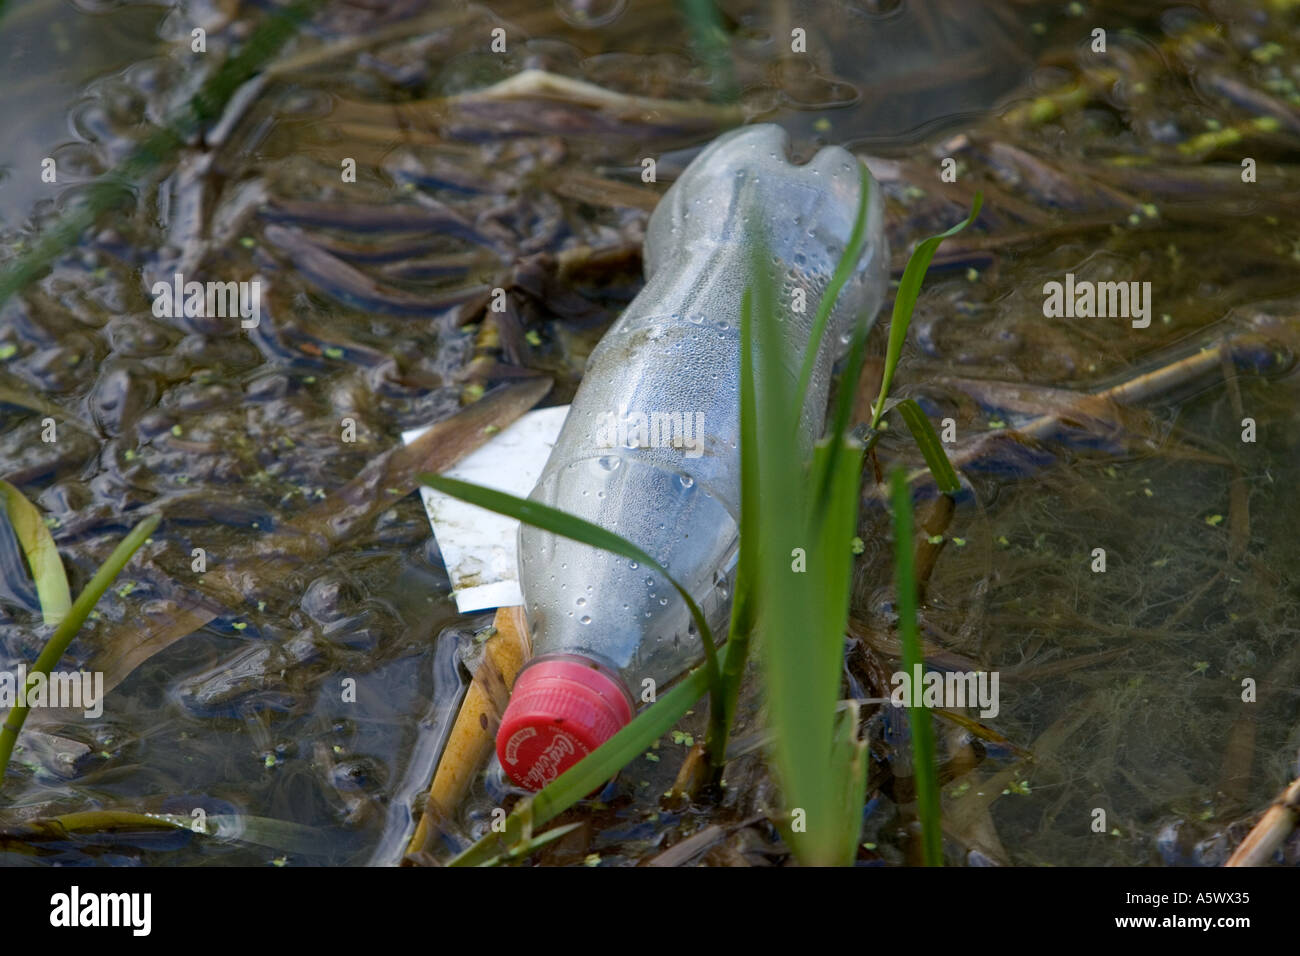 Plastic bottle rubbish thrown away dumped canal - Stock Image